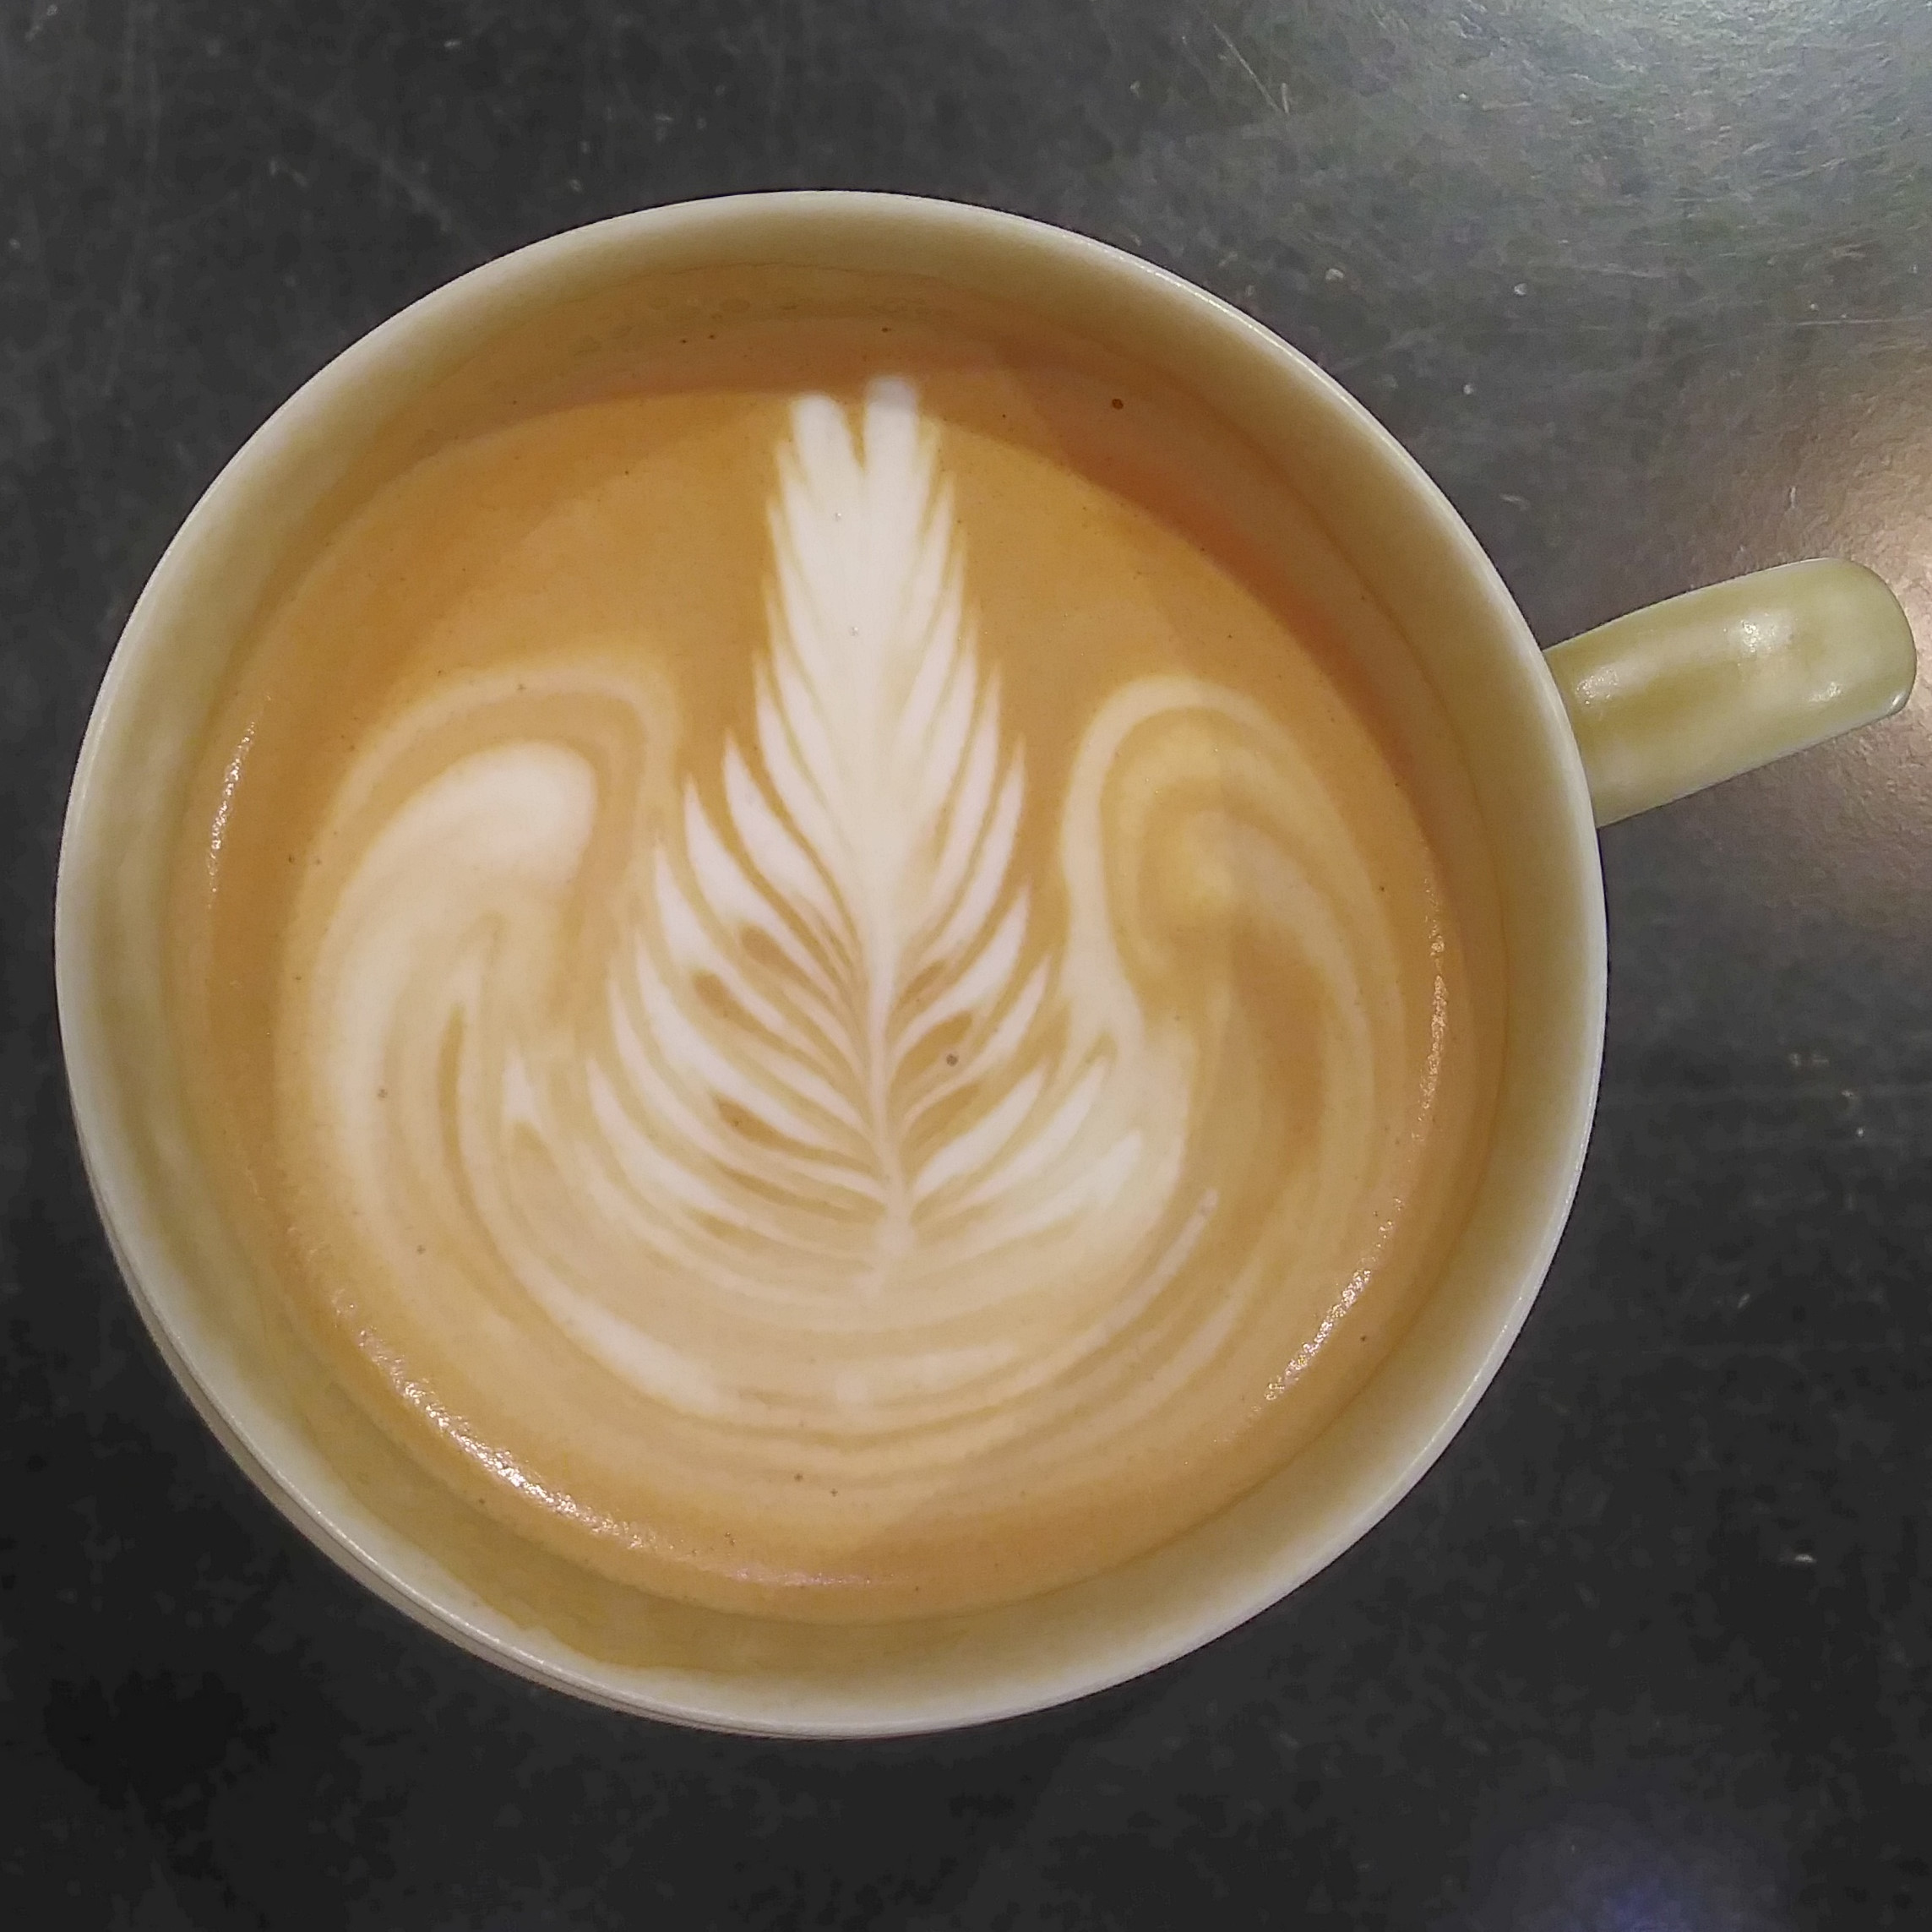 Some lovely latte art in my latte at Ratio &C, part of the Onibus chain in Tokyo.